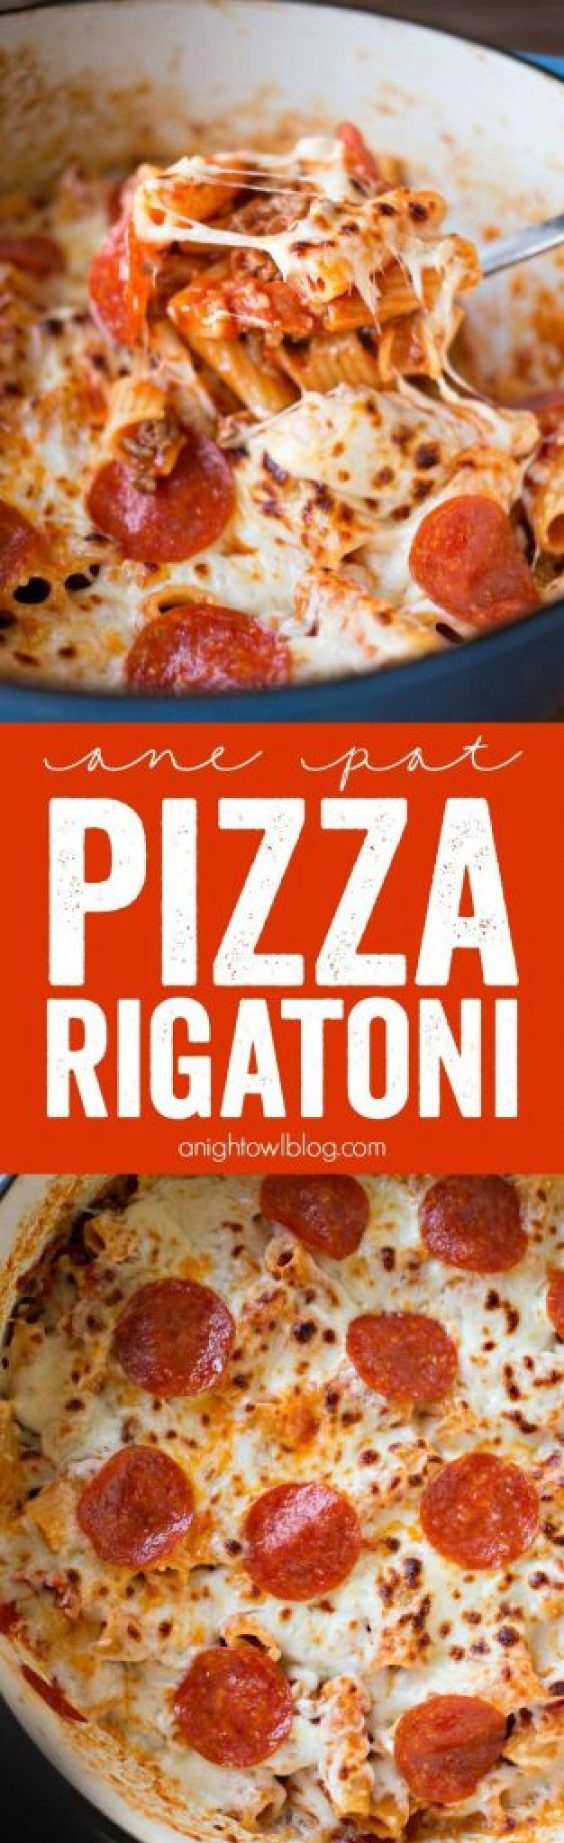 One Pot Pizza Rigatoni Recipe | A Night Owl Blog - The Best Easy One Pot Pasta Family Dinner Recipes